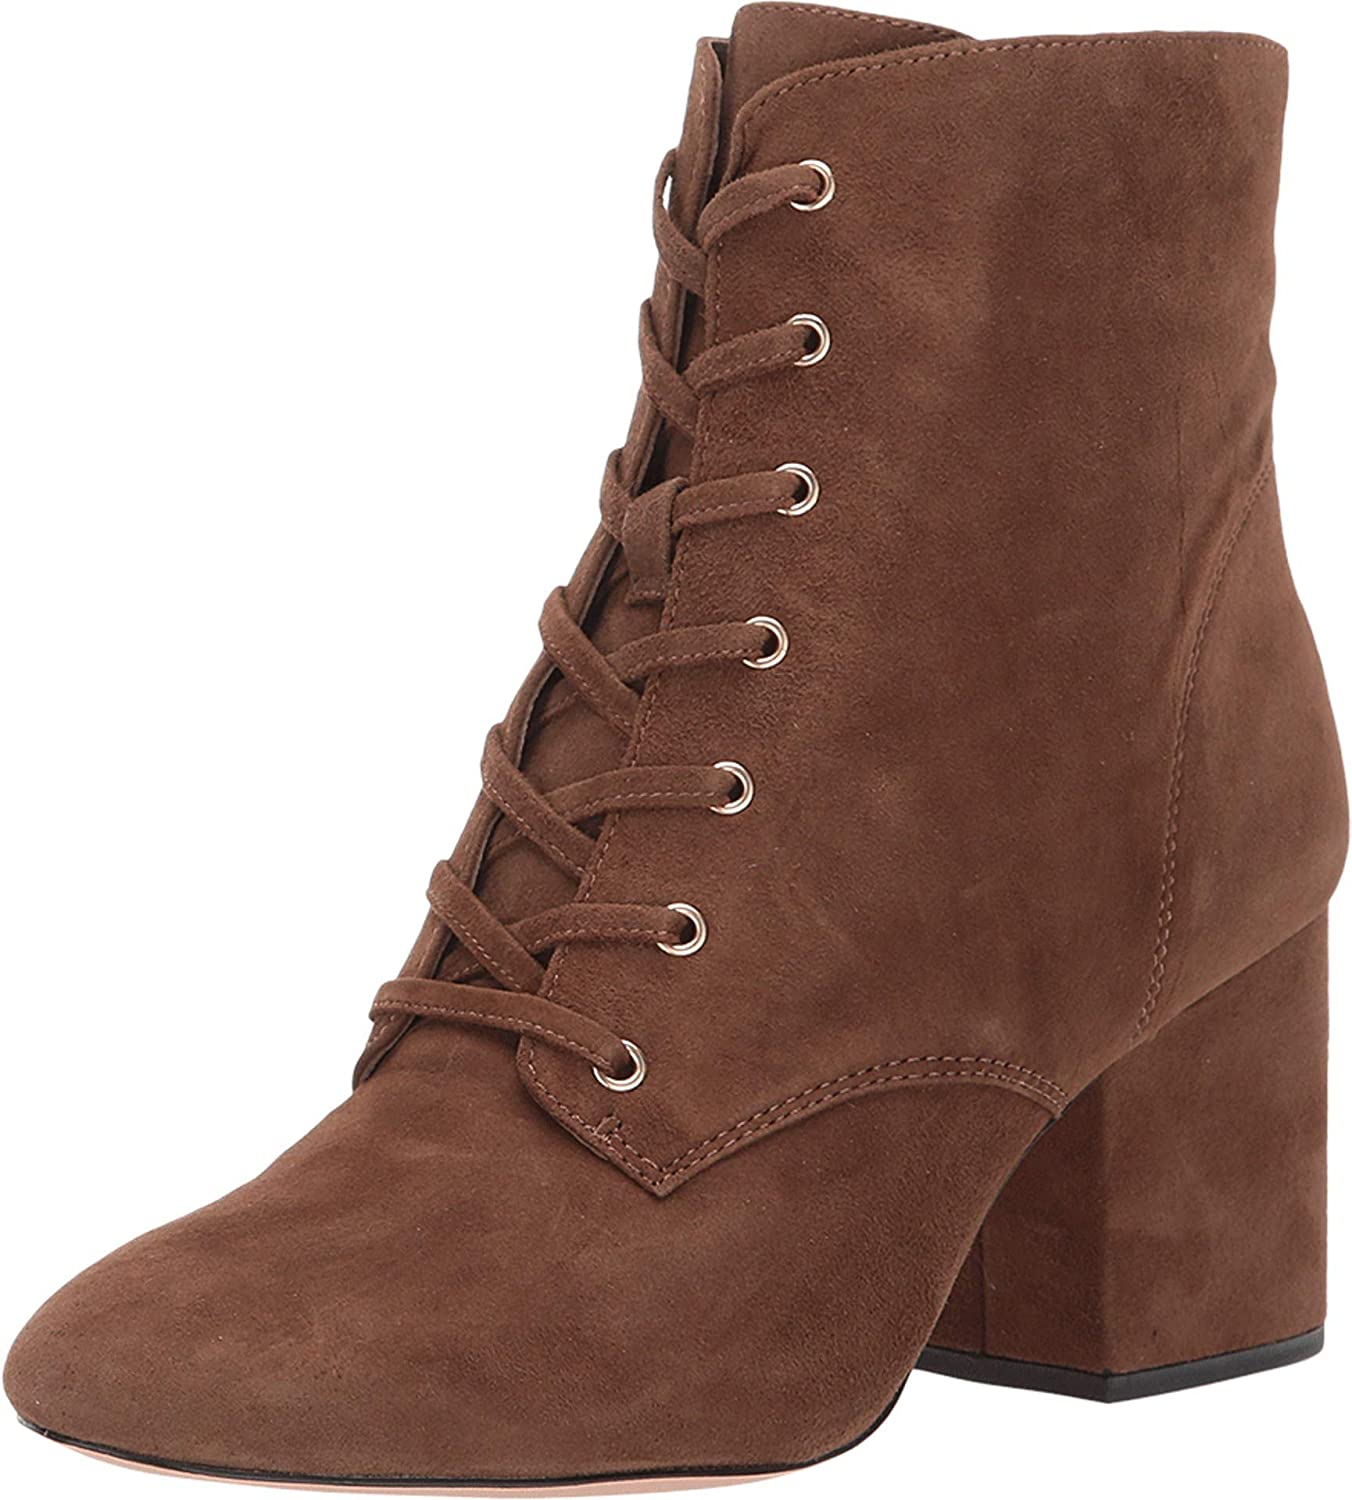 J.Crew Suede Lace-Up Maya Boot